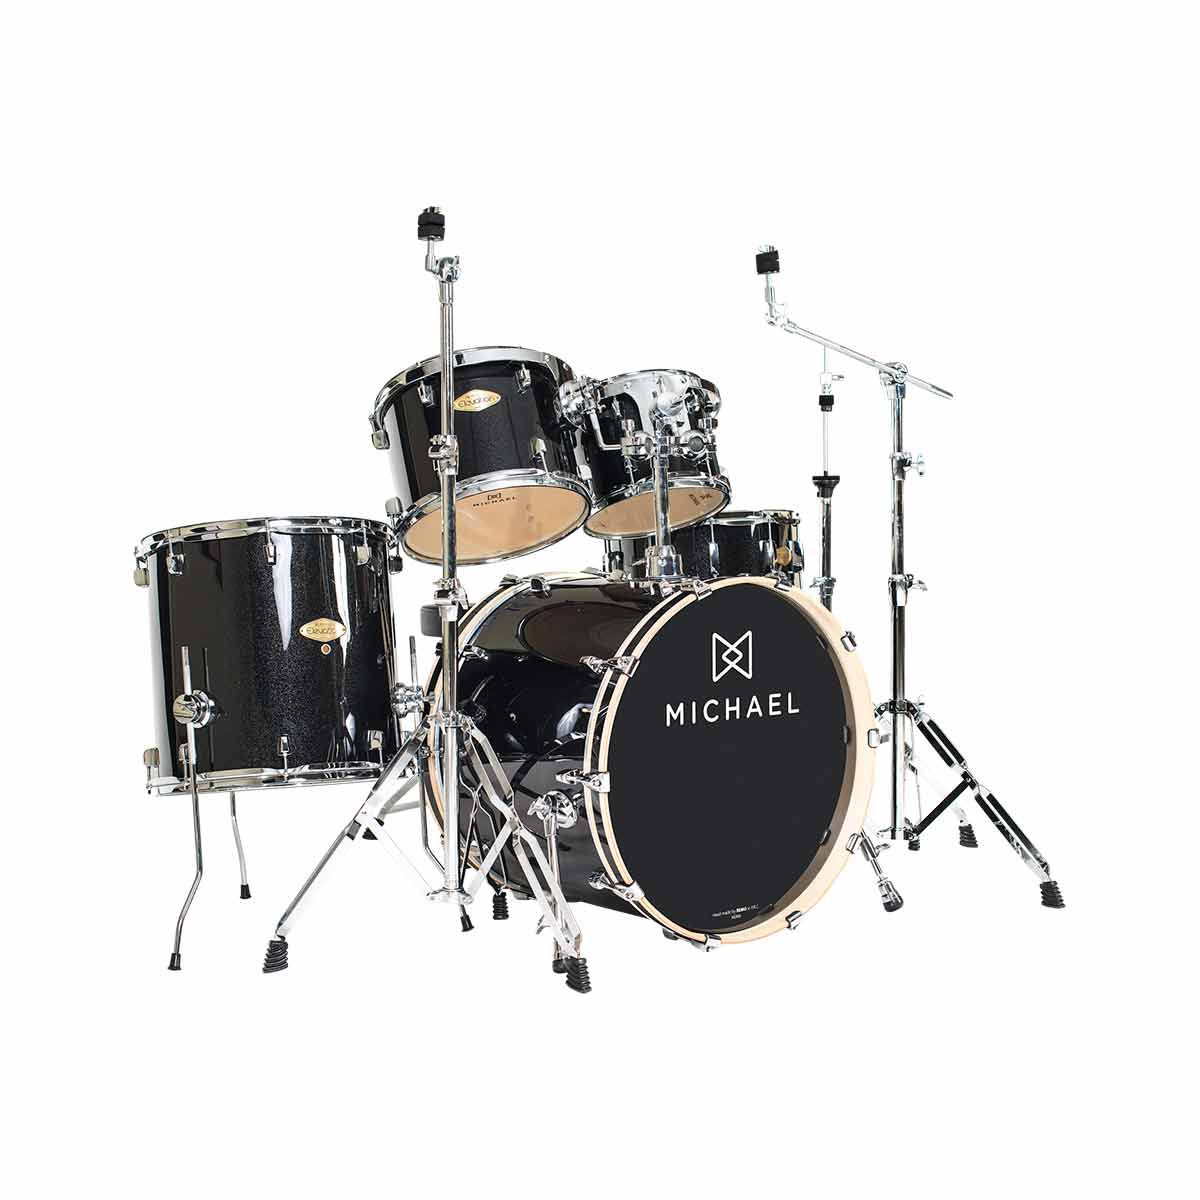 Bateria Ac�stica Bumbo 20 Polegadas Elevation DM852 BKS Preta Sparkle - Michael